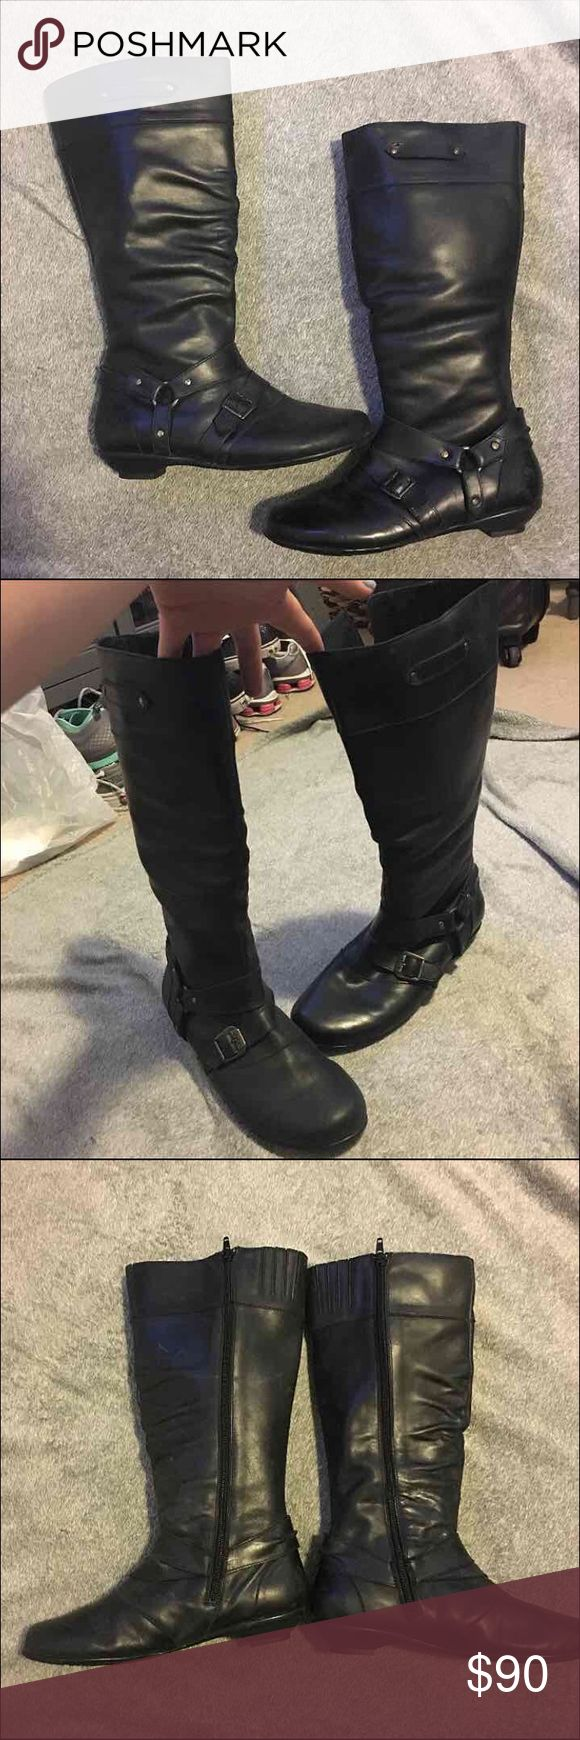 Authentic Born Boots size 6 Authentic Born Boots! Size 6. Go about mid calf. Have only been worn once. Some scuffs just from being stored in a box for a while. Born Shoes